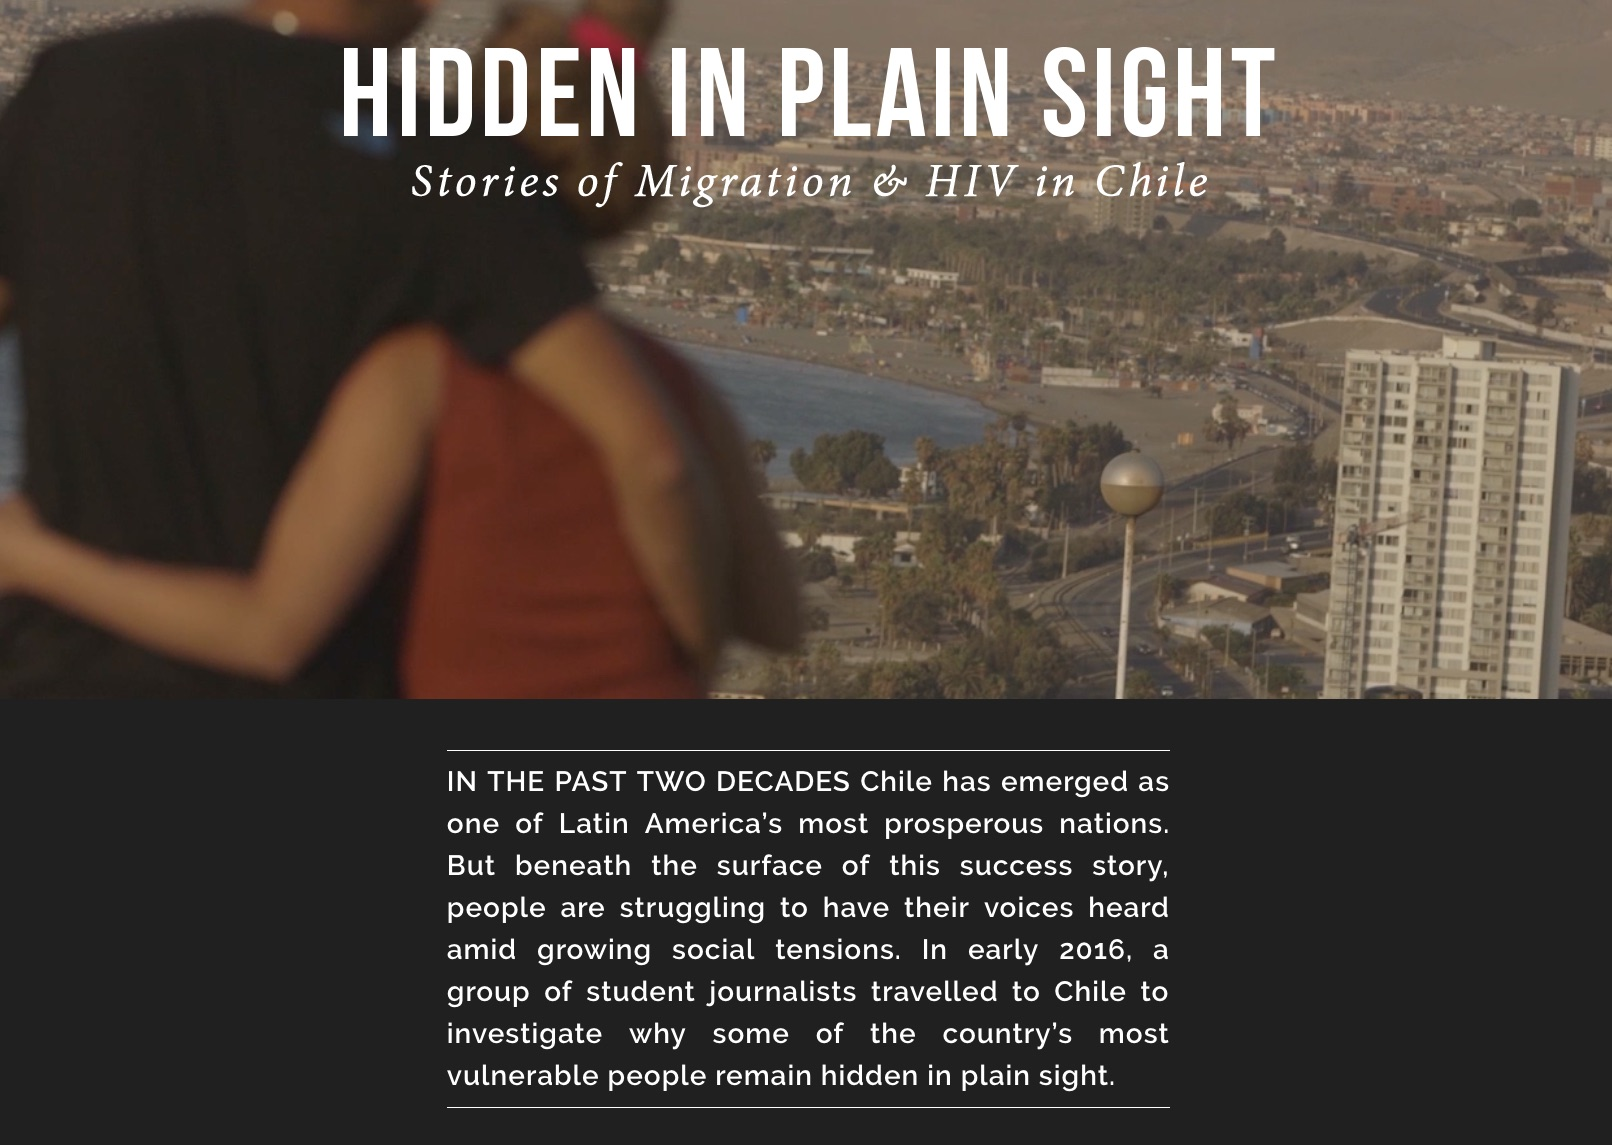 Hidden in Plain Sight: Stories on Migration and HIV in Chile